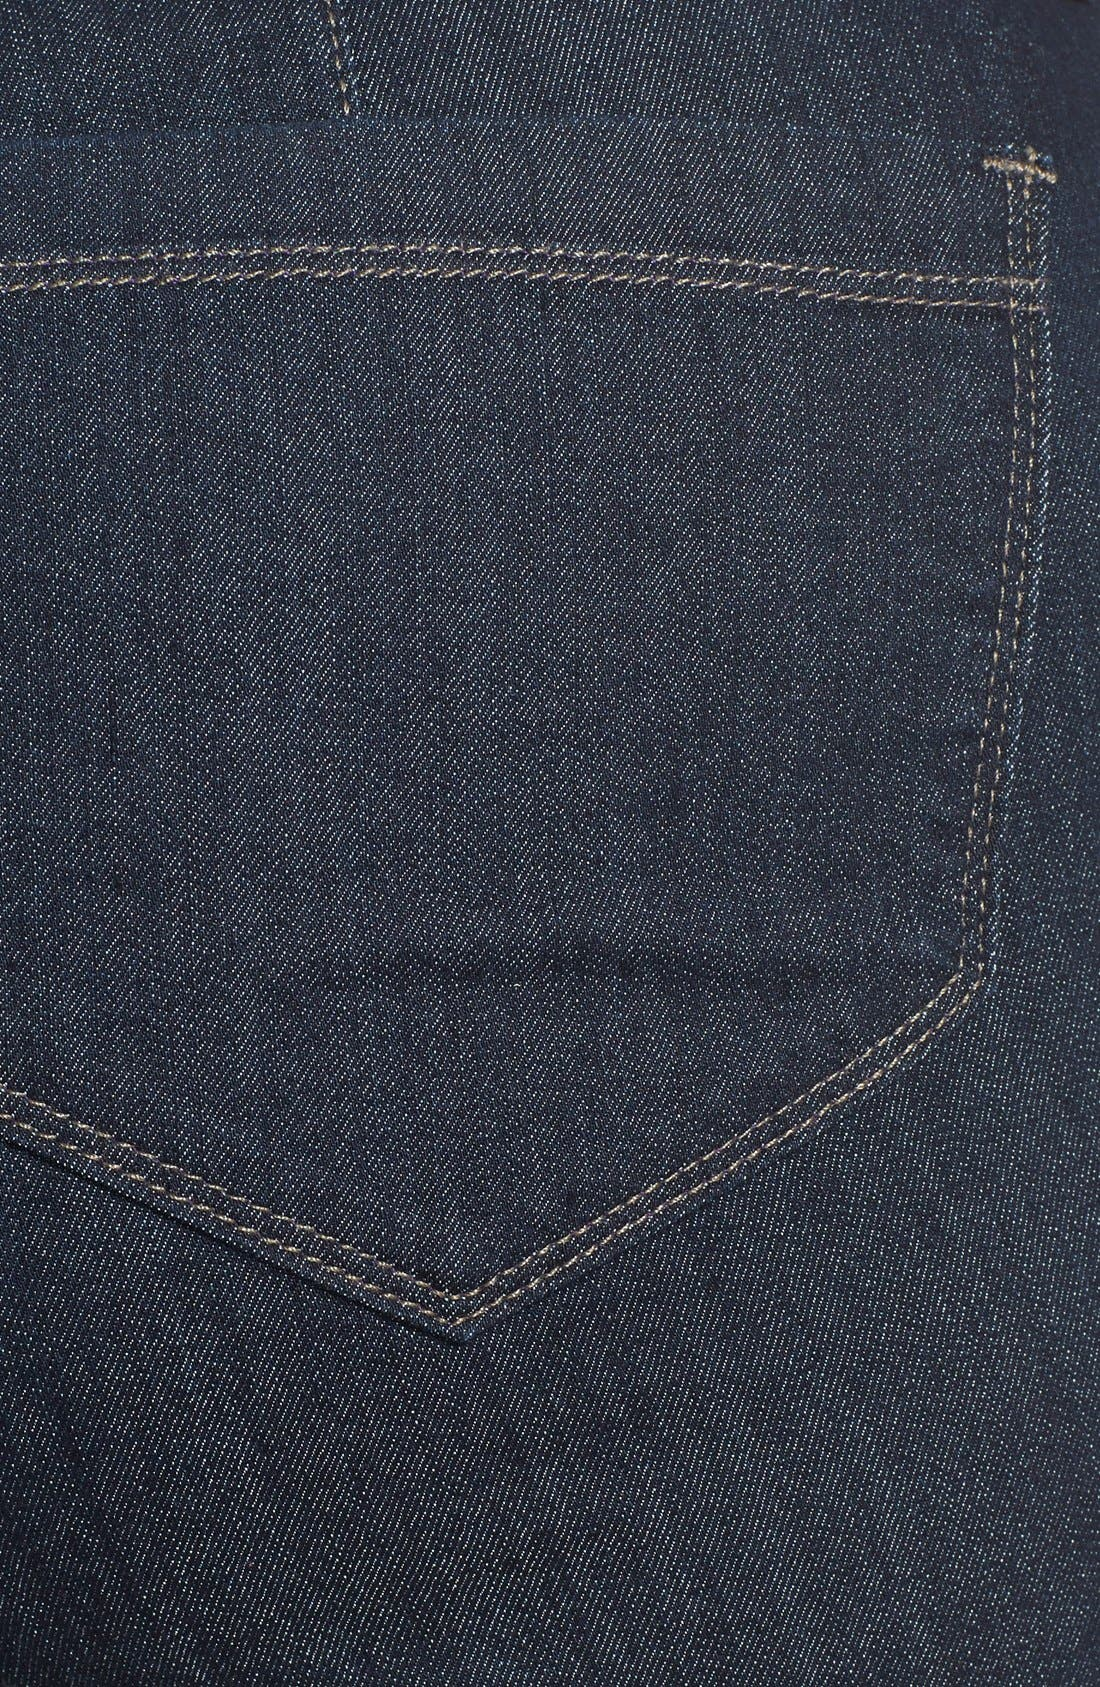 'Isabella' Stretch Trouser Jeans,                             Alternate thumbnail 4, color,                             DARK ENZYME